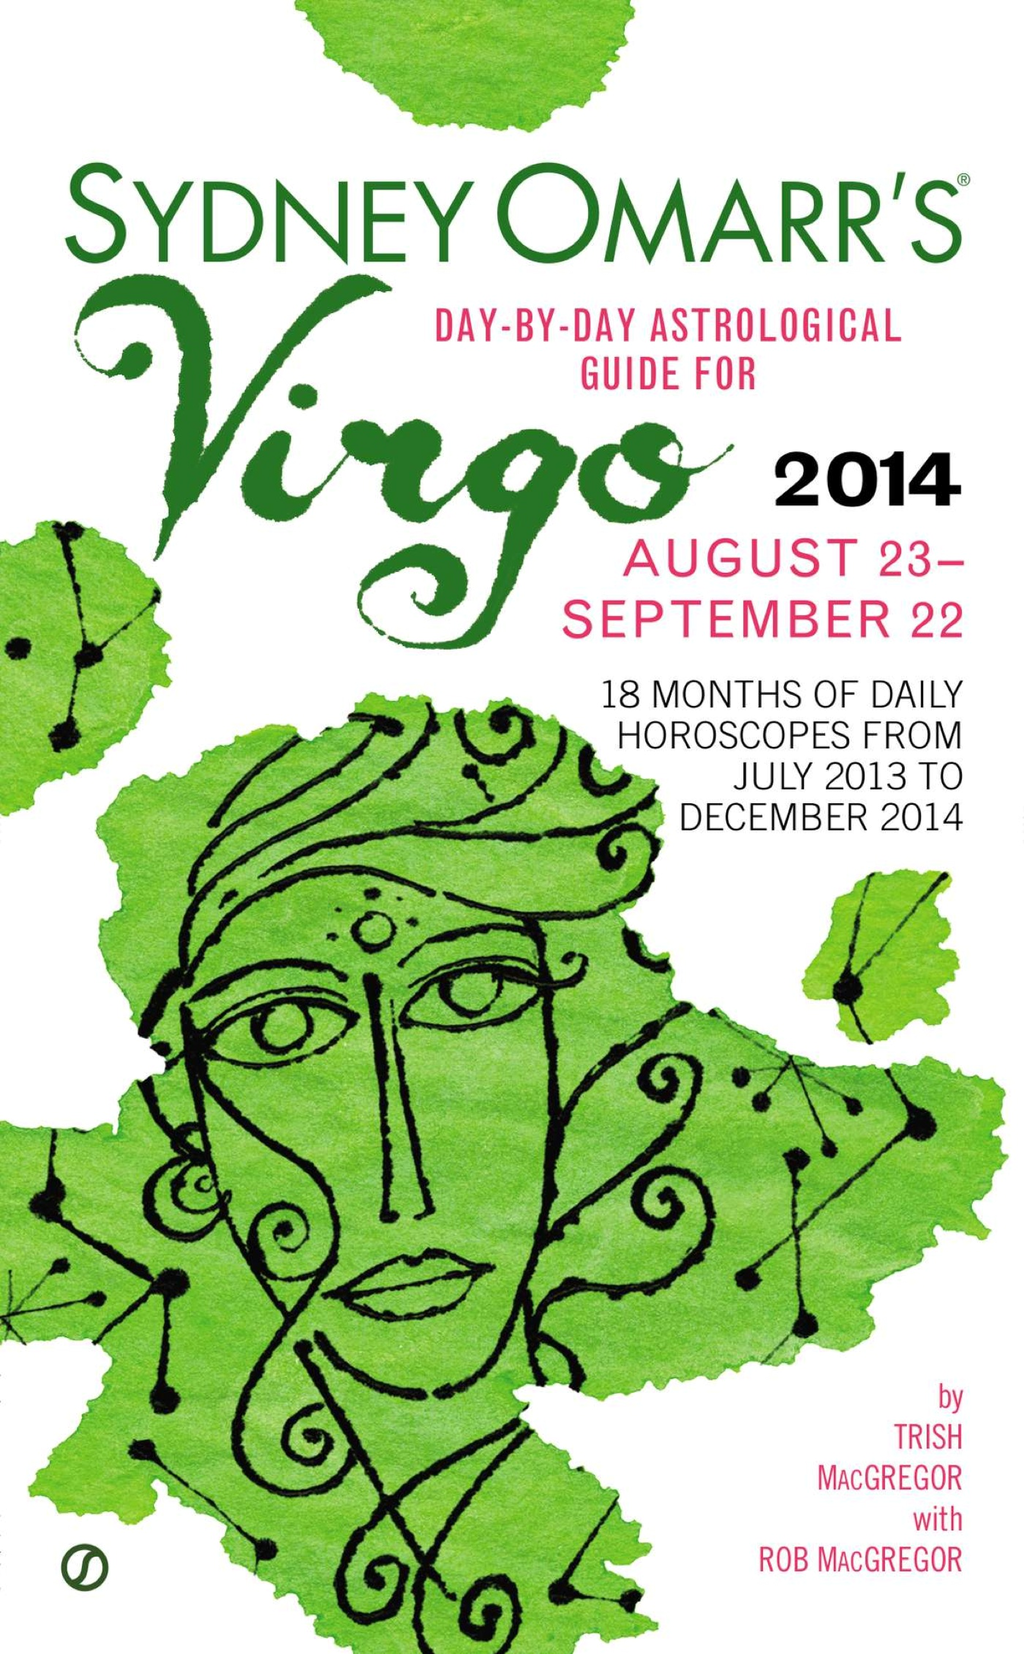 Sydney Omarr's Day-By-Day Astrological Guide for the Year 2014: Virgo